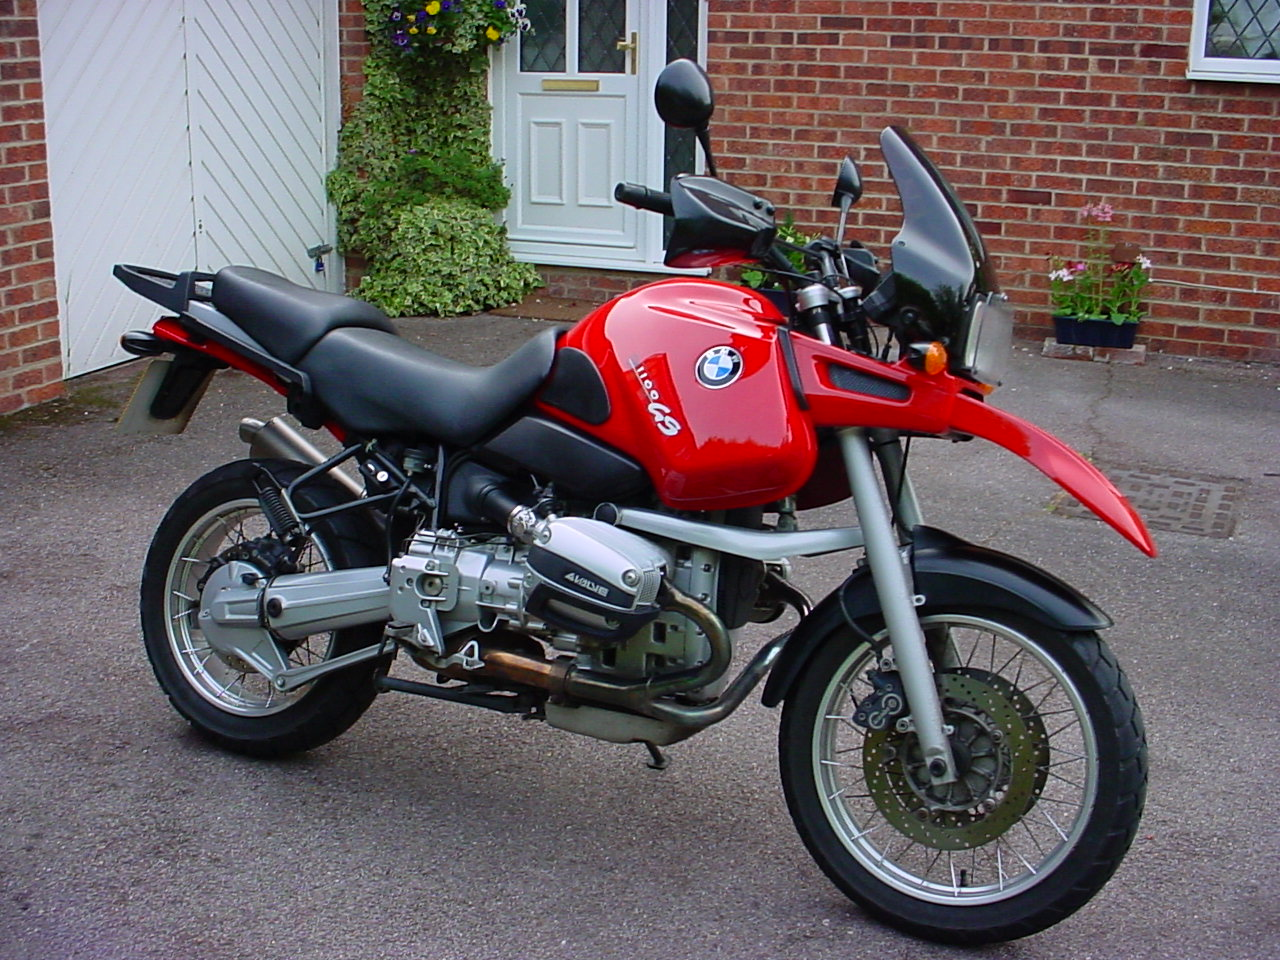 BMW R1100GS 1998 images #6329